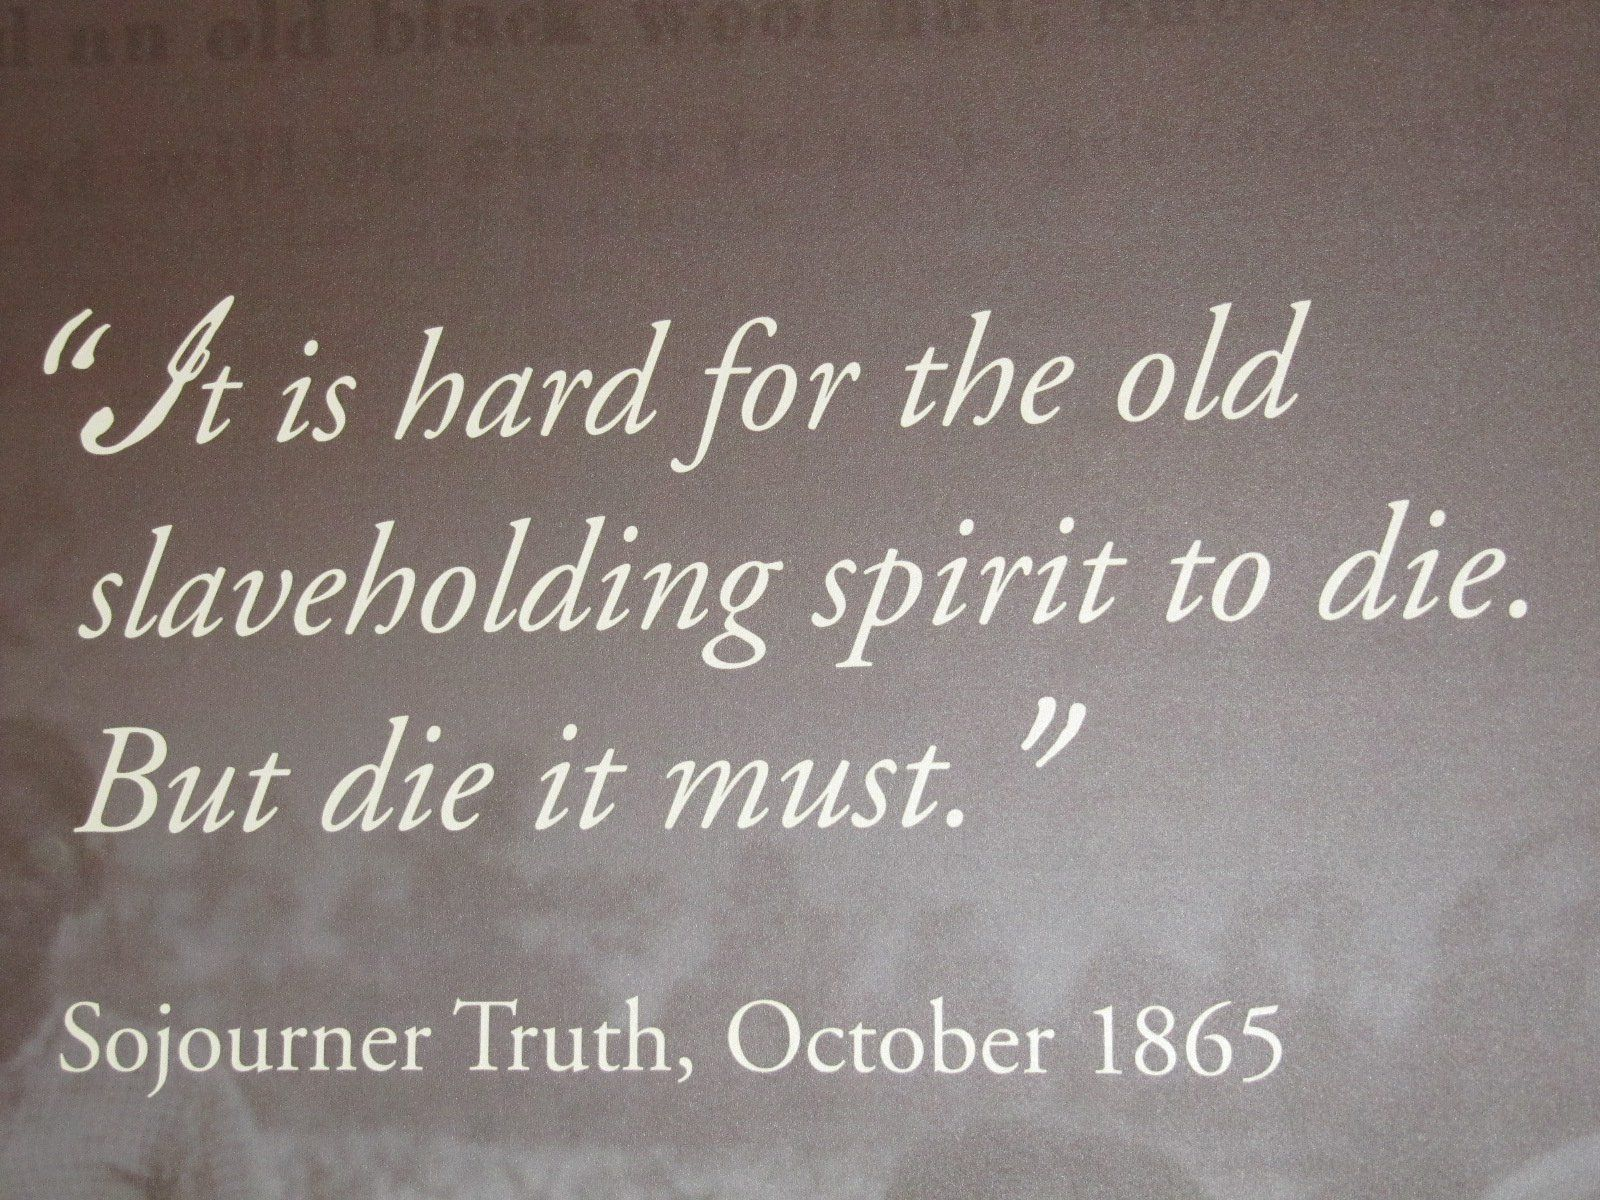 Sojourner Truth Quotes Sojourner Truth Quotes About Slavery 46584  Nanozine  Good Quotes .